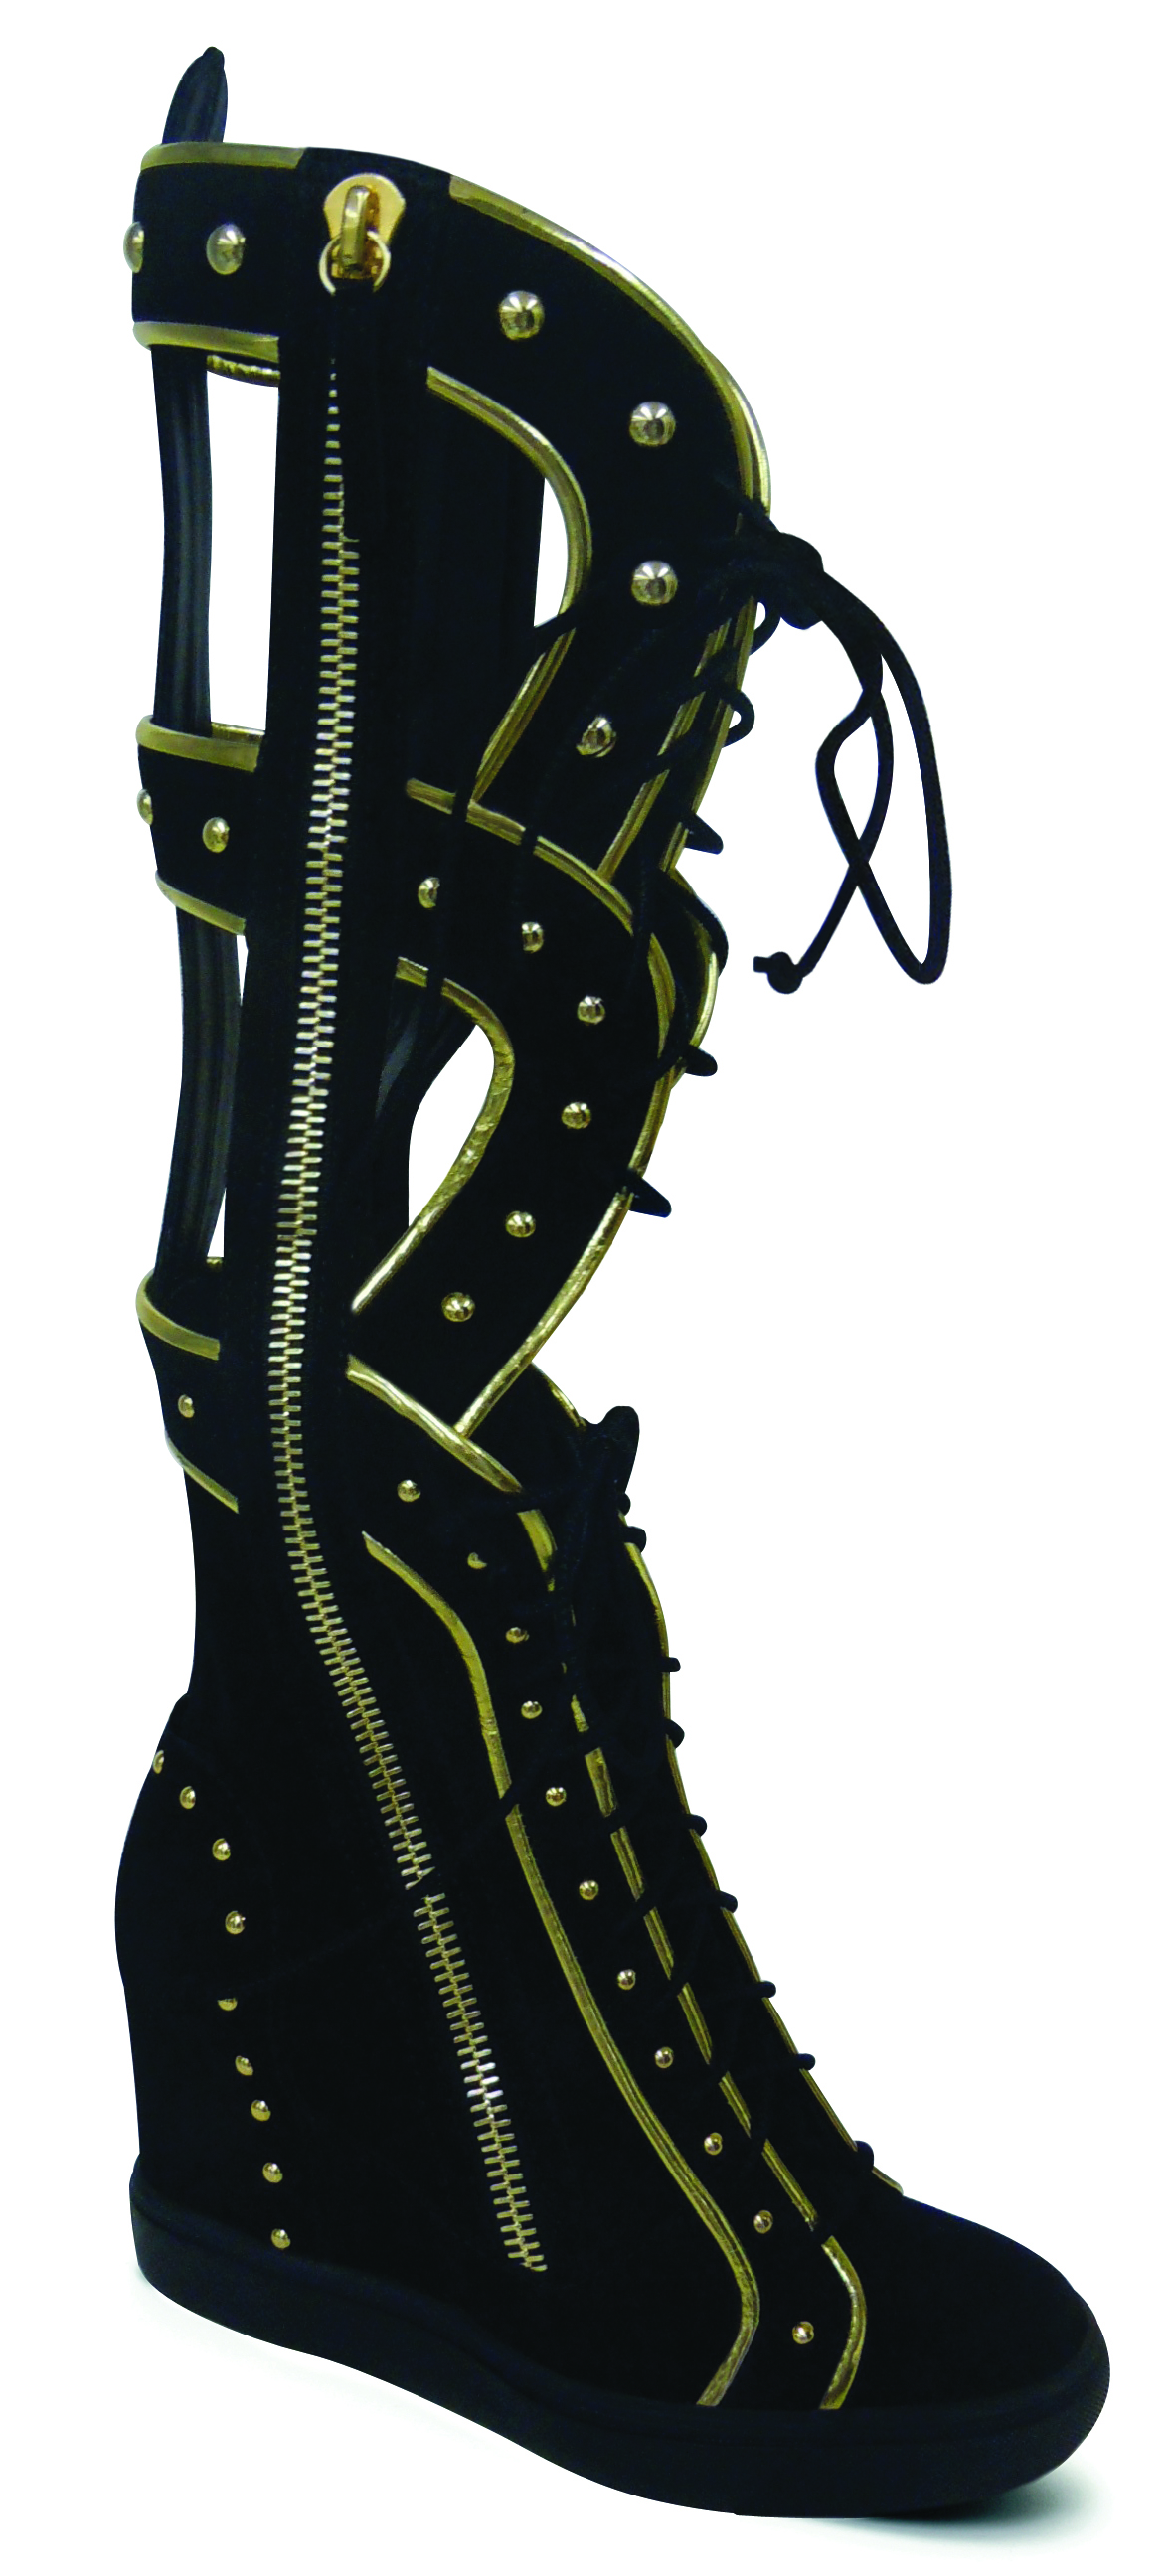 Giuseppe Zanotti For Nicki Minaj at The Super Bowl